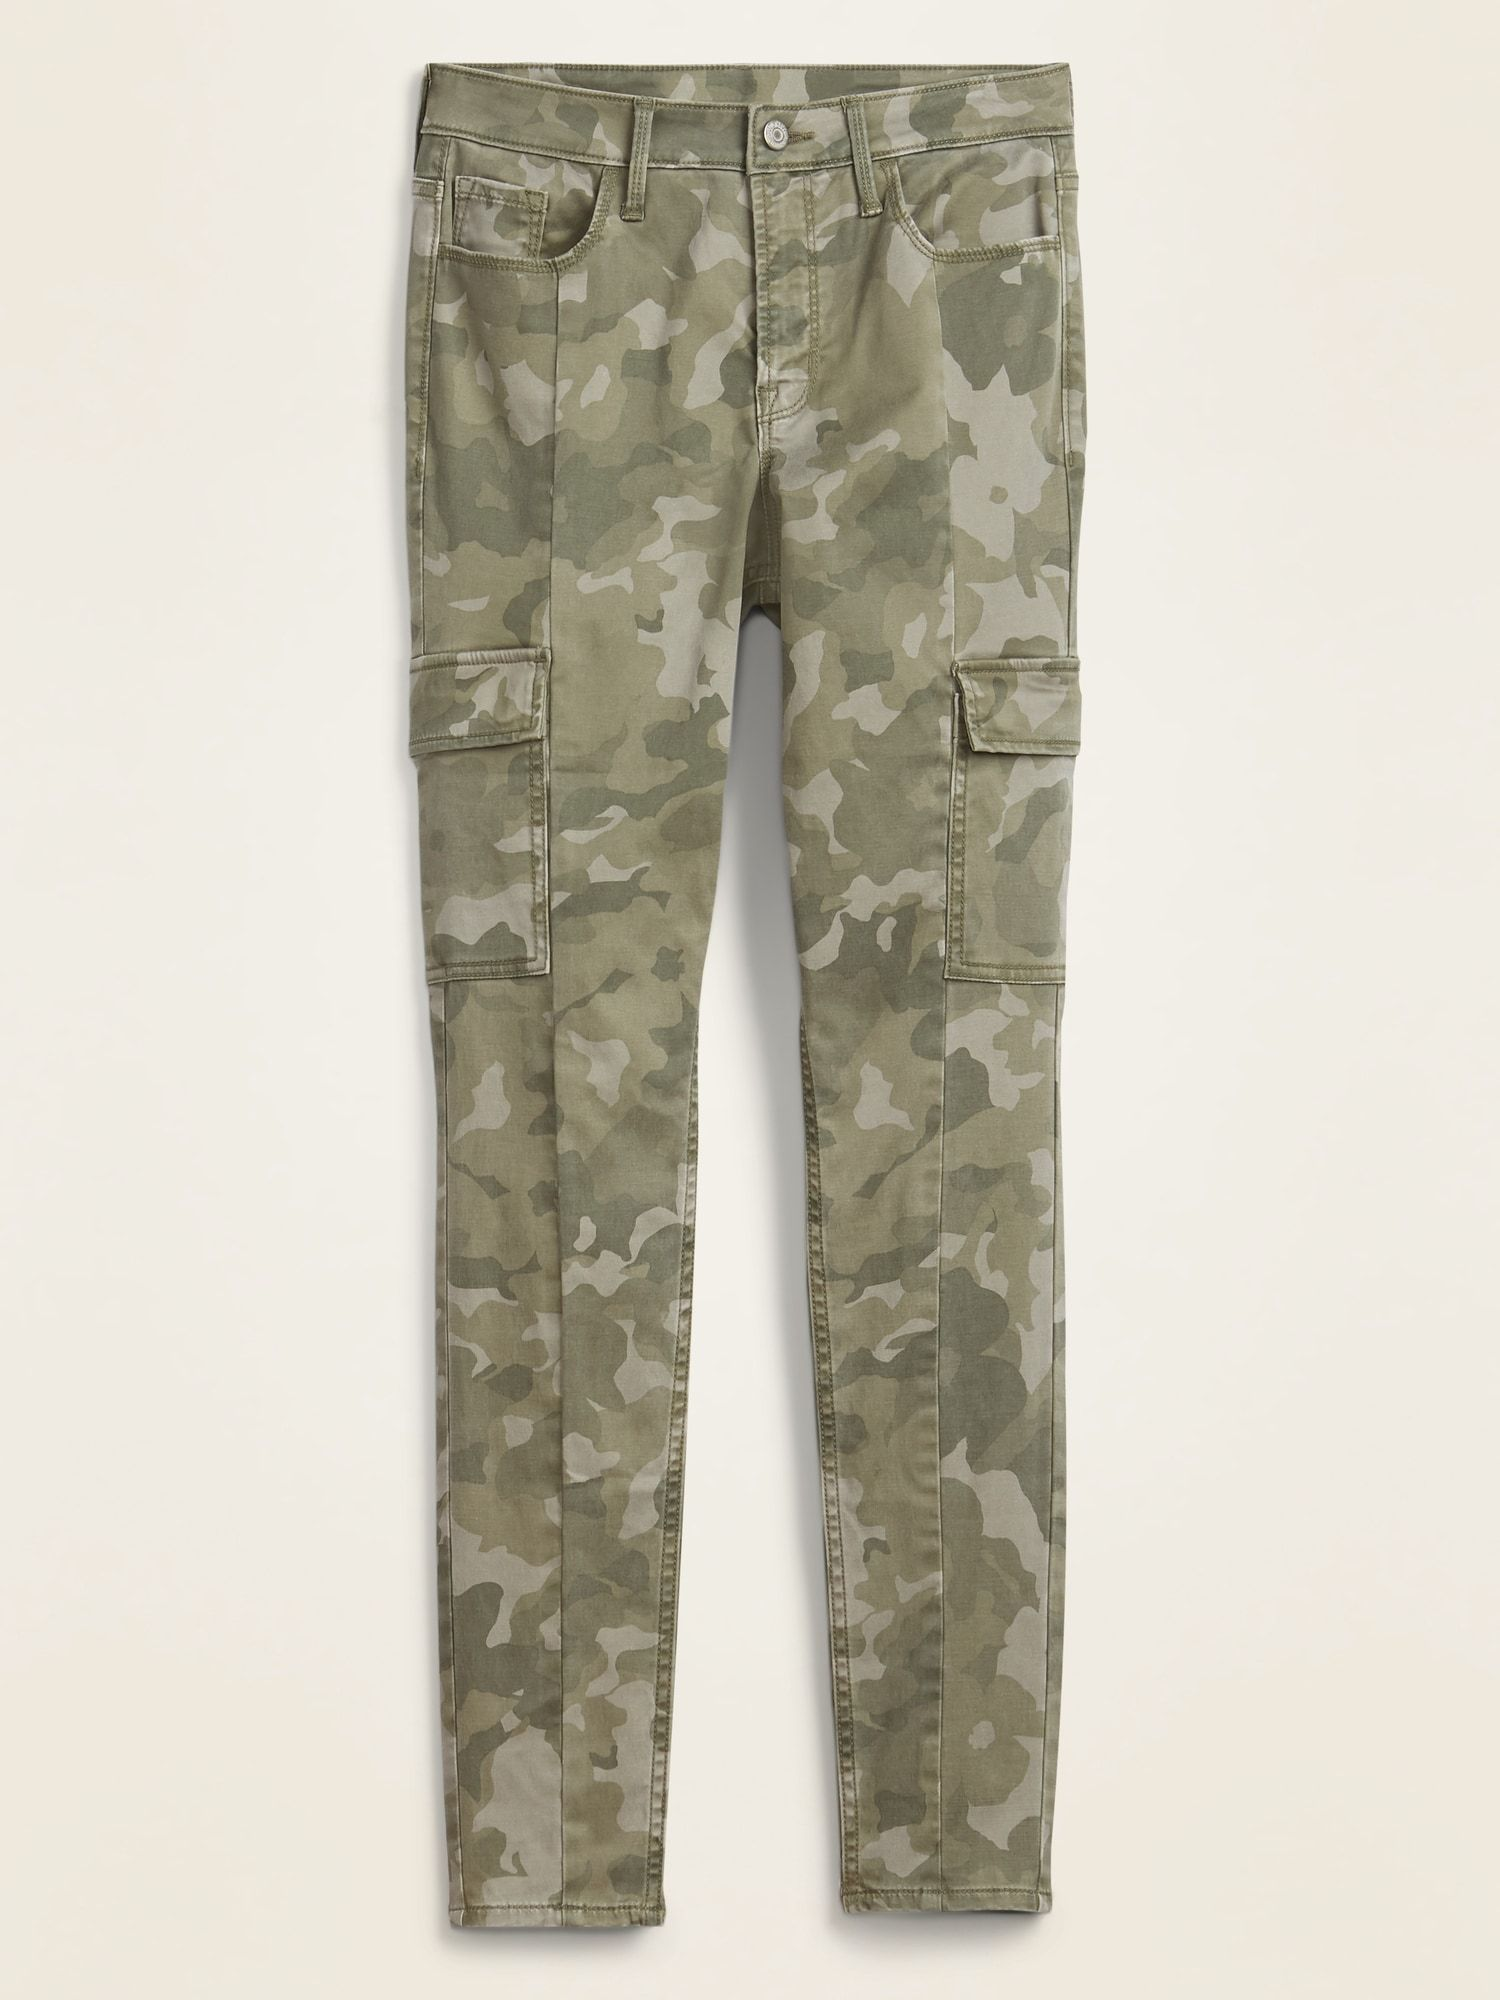 High Waisted Camo Sateen Rockstar Super Skinny Cargo Pants For Women Old Navy In 2020 Skinny Cargo Pants Cargo Pants Women Pants For Women